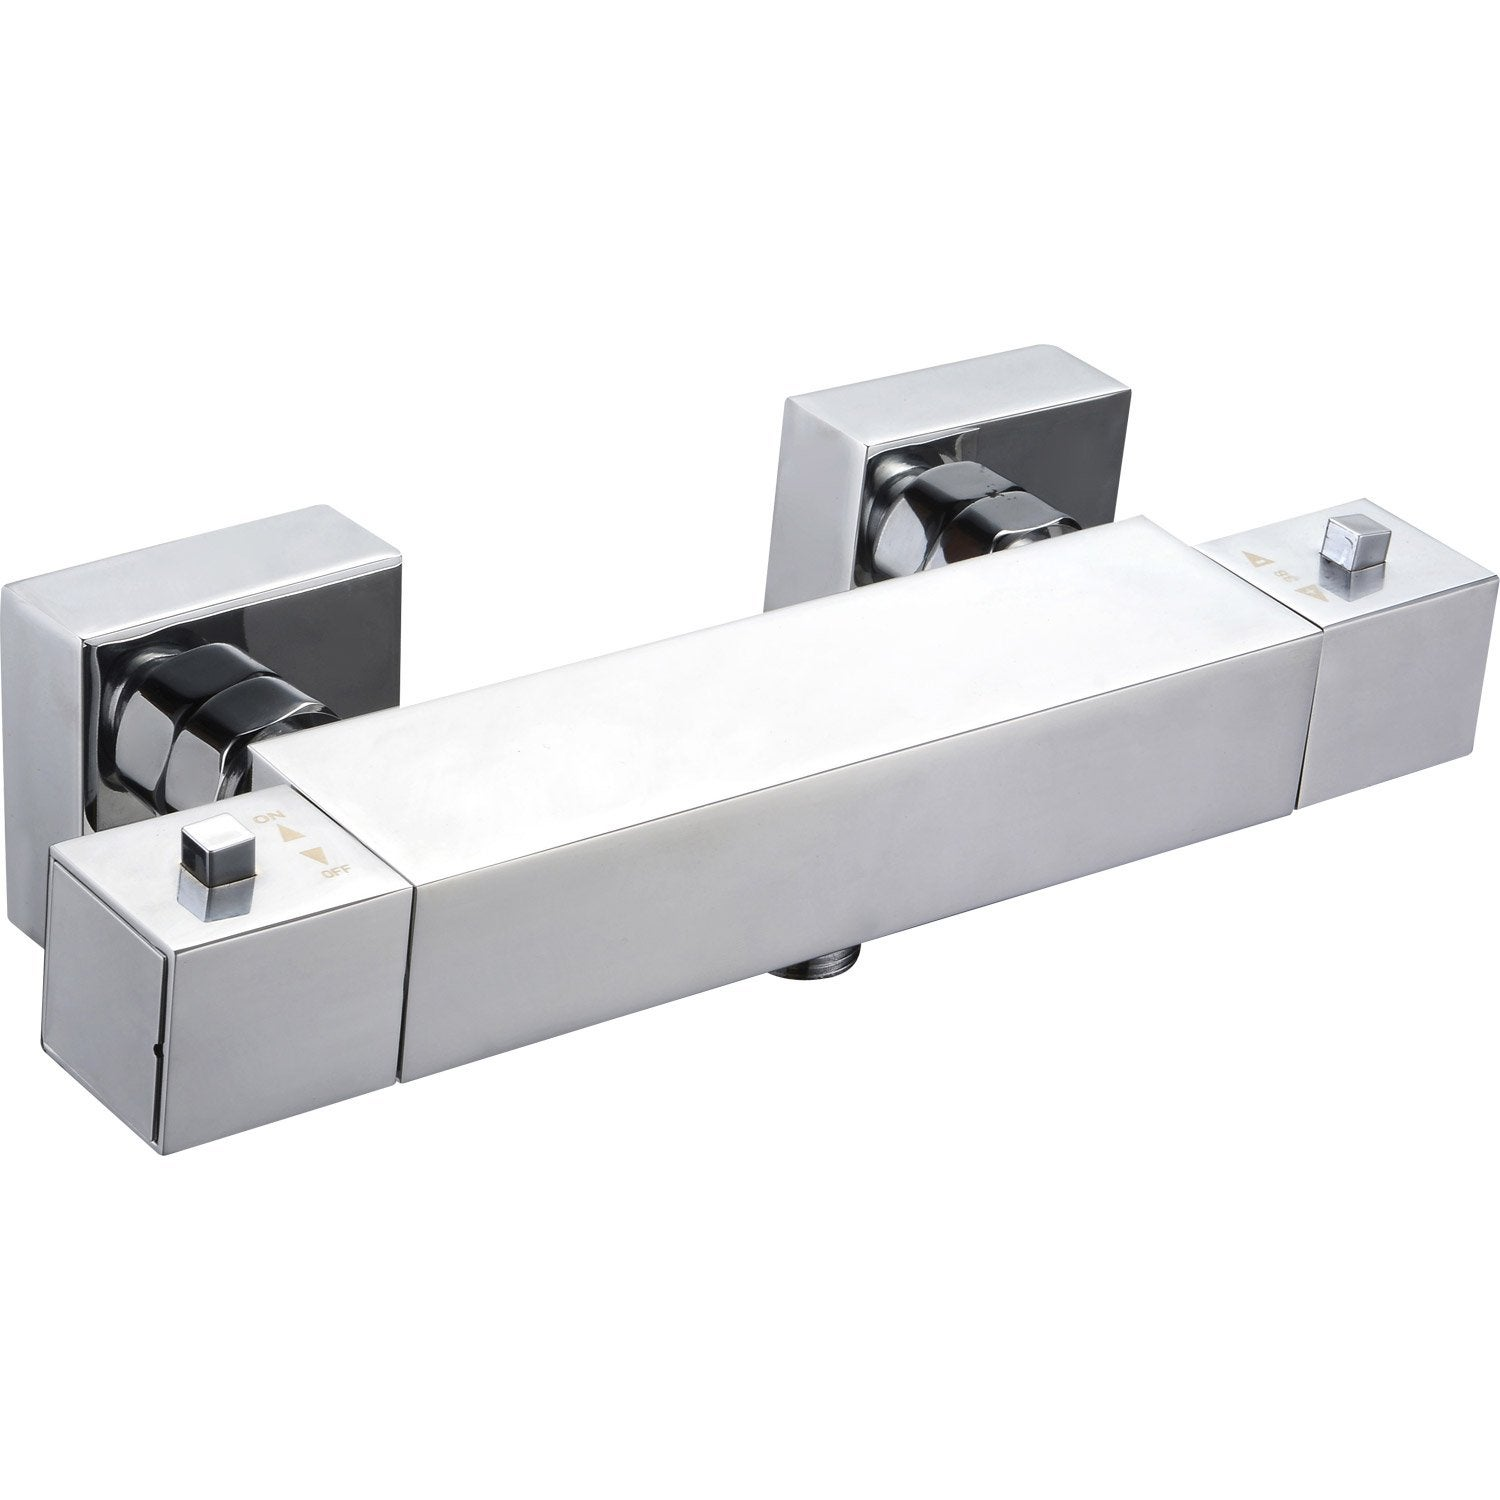 Mitigeur thermostatique de douche chrom sensea luka for Robinetterie leroy merlin salle de bain